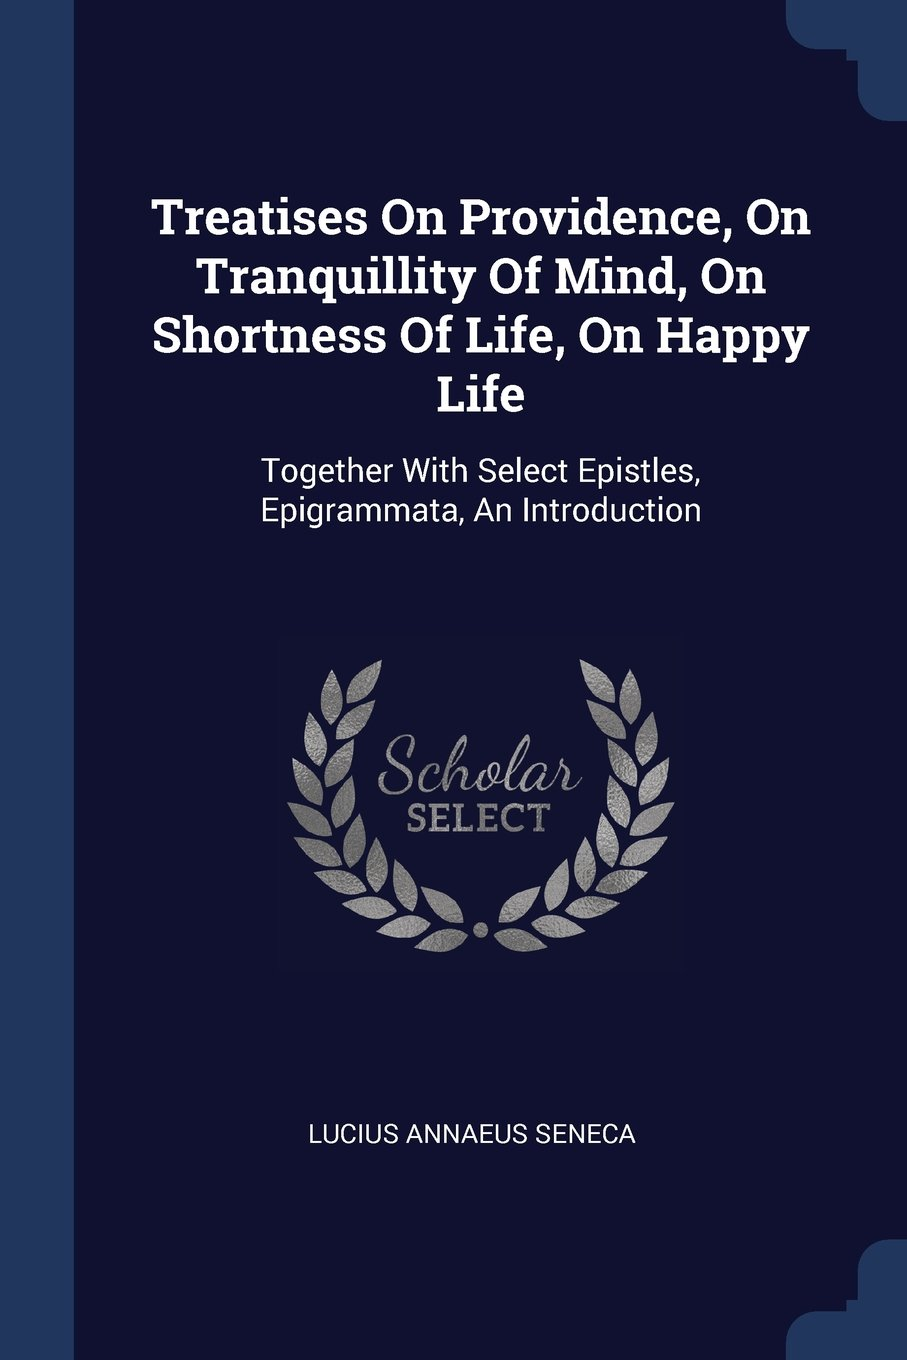 Download Treatises On Providence, On Tranquillity Of Mind, On Shortness Of Life, On Happy Life: Together With Select Epistles, Epigrammata, An Introduction pdf epub